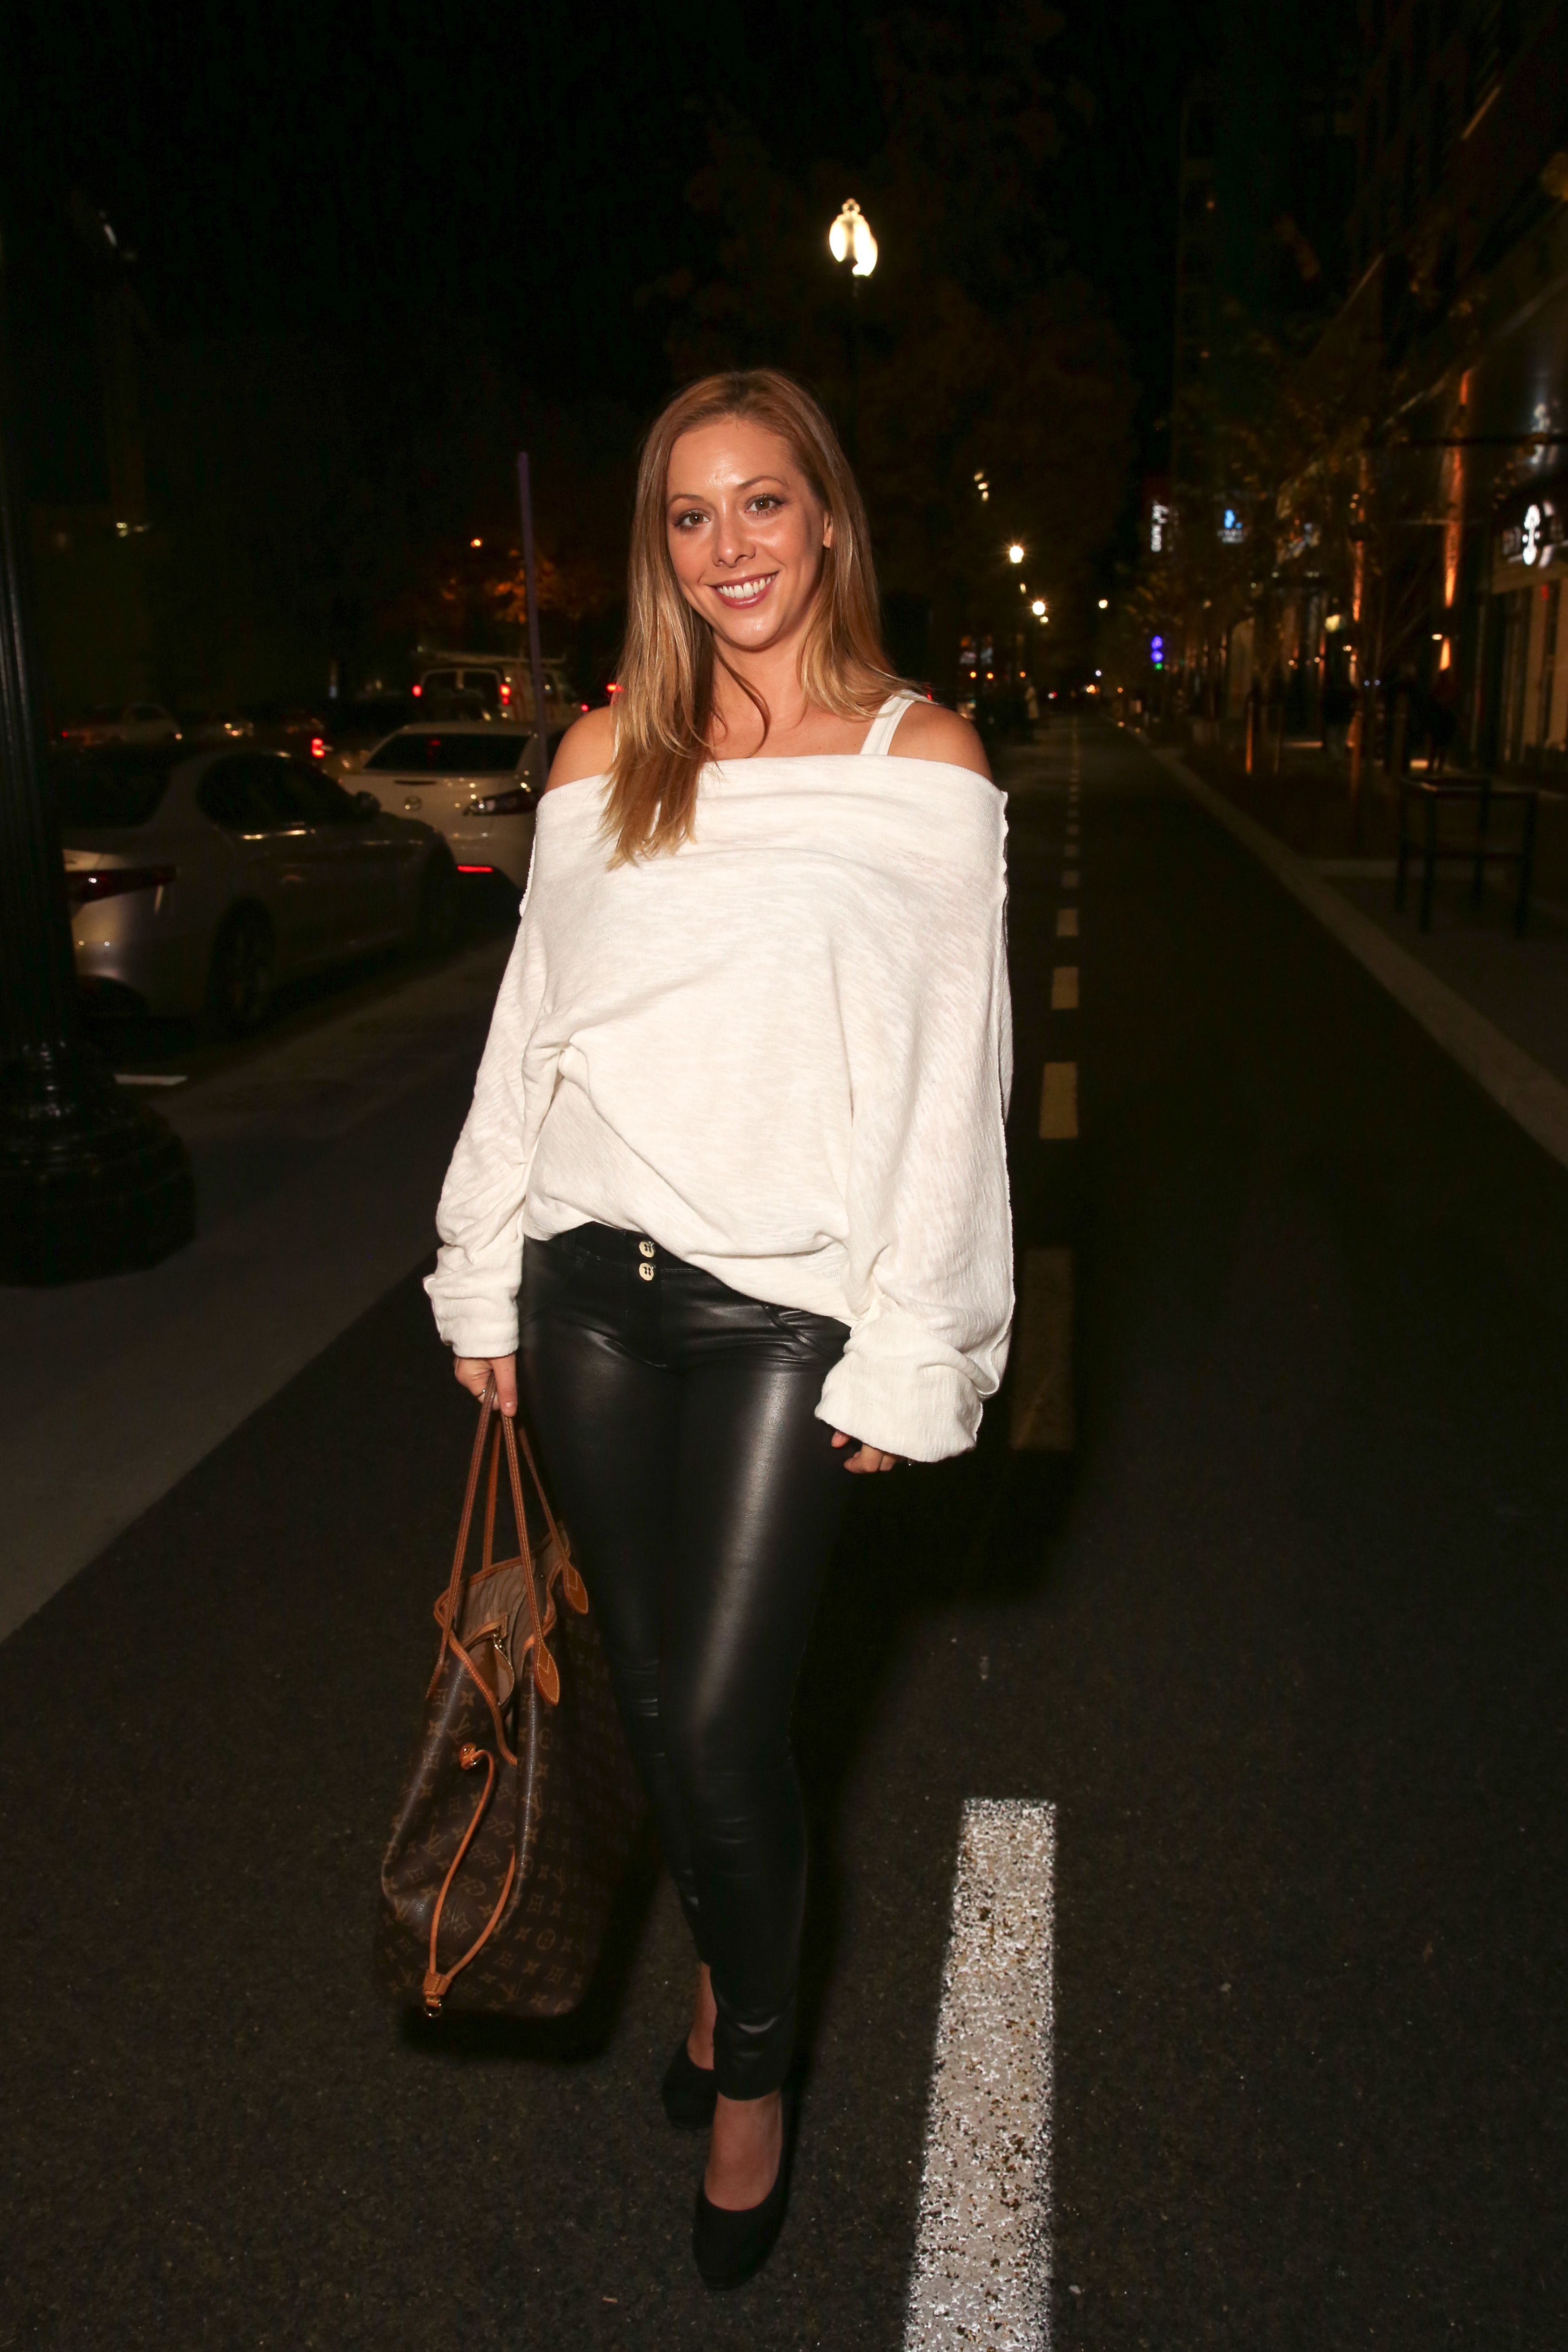 Heather Coward's leather leggings are fierce as heck.{&amp;nbsp;}(Amanda Andrade-Rhoades/DC Refined)<p></p>